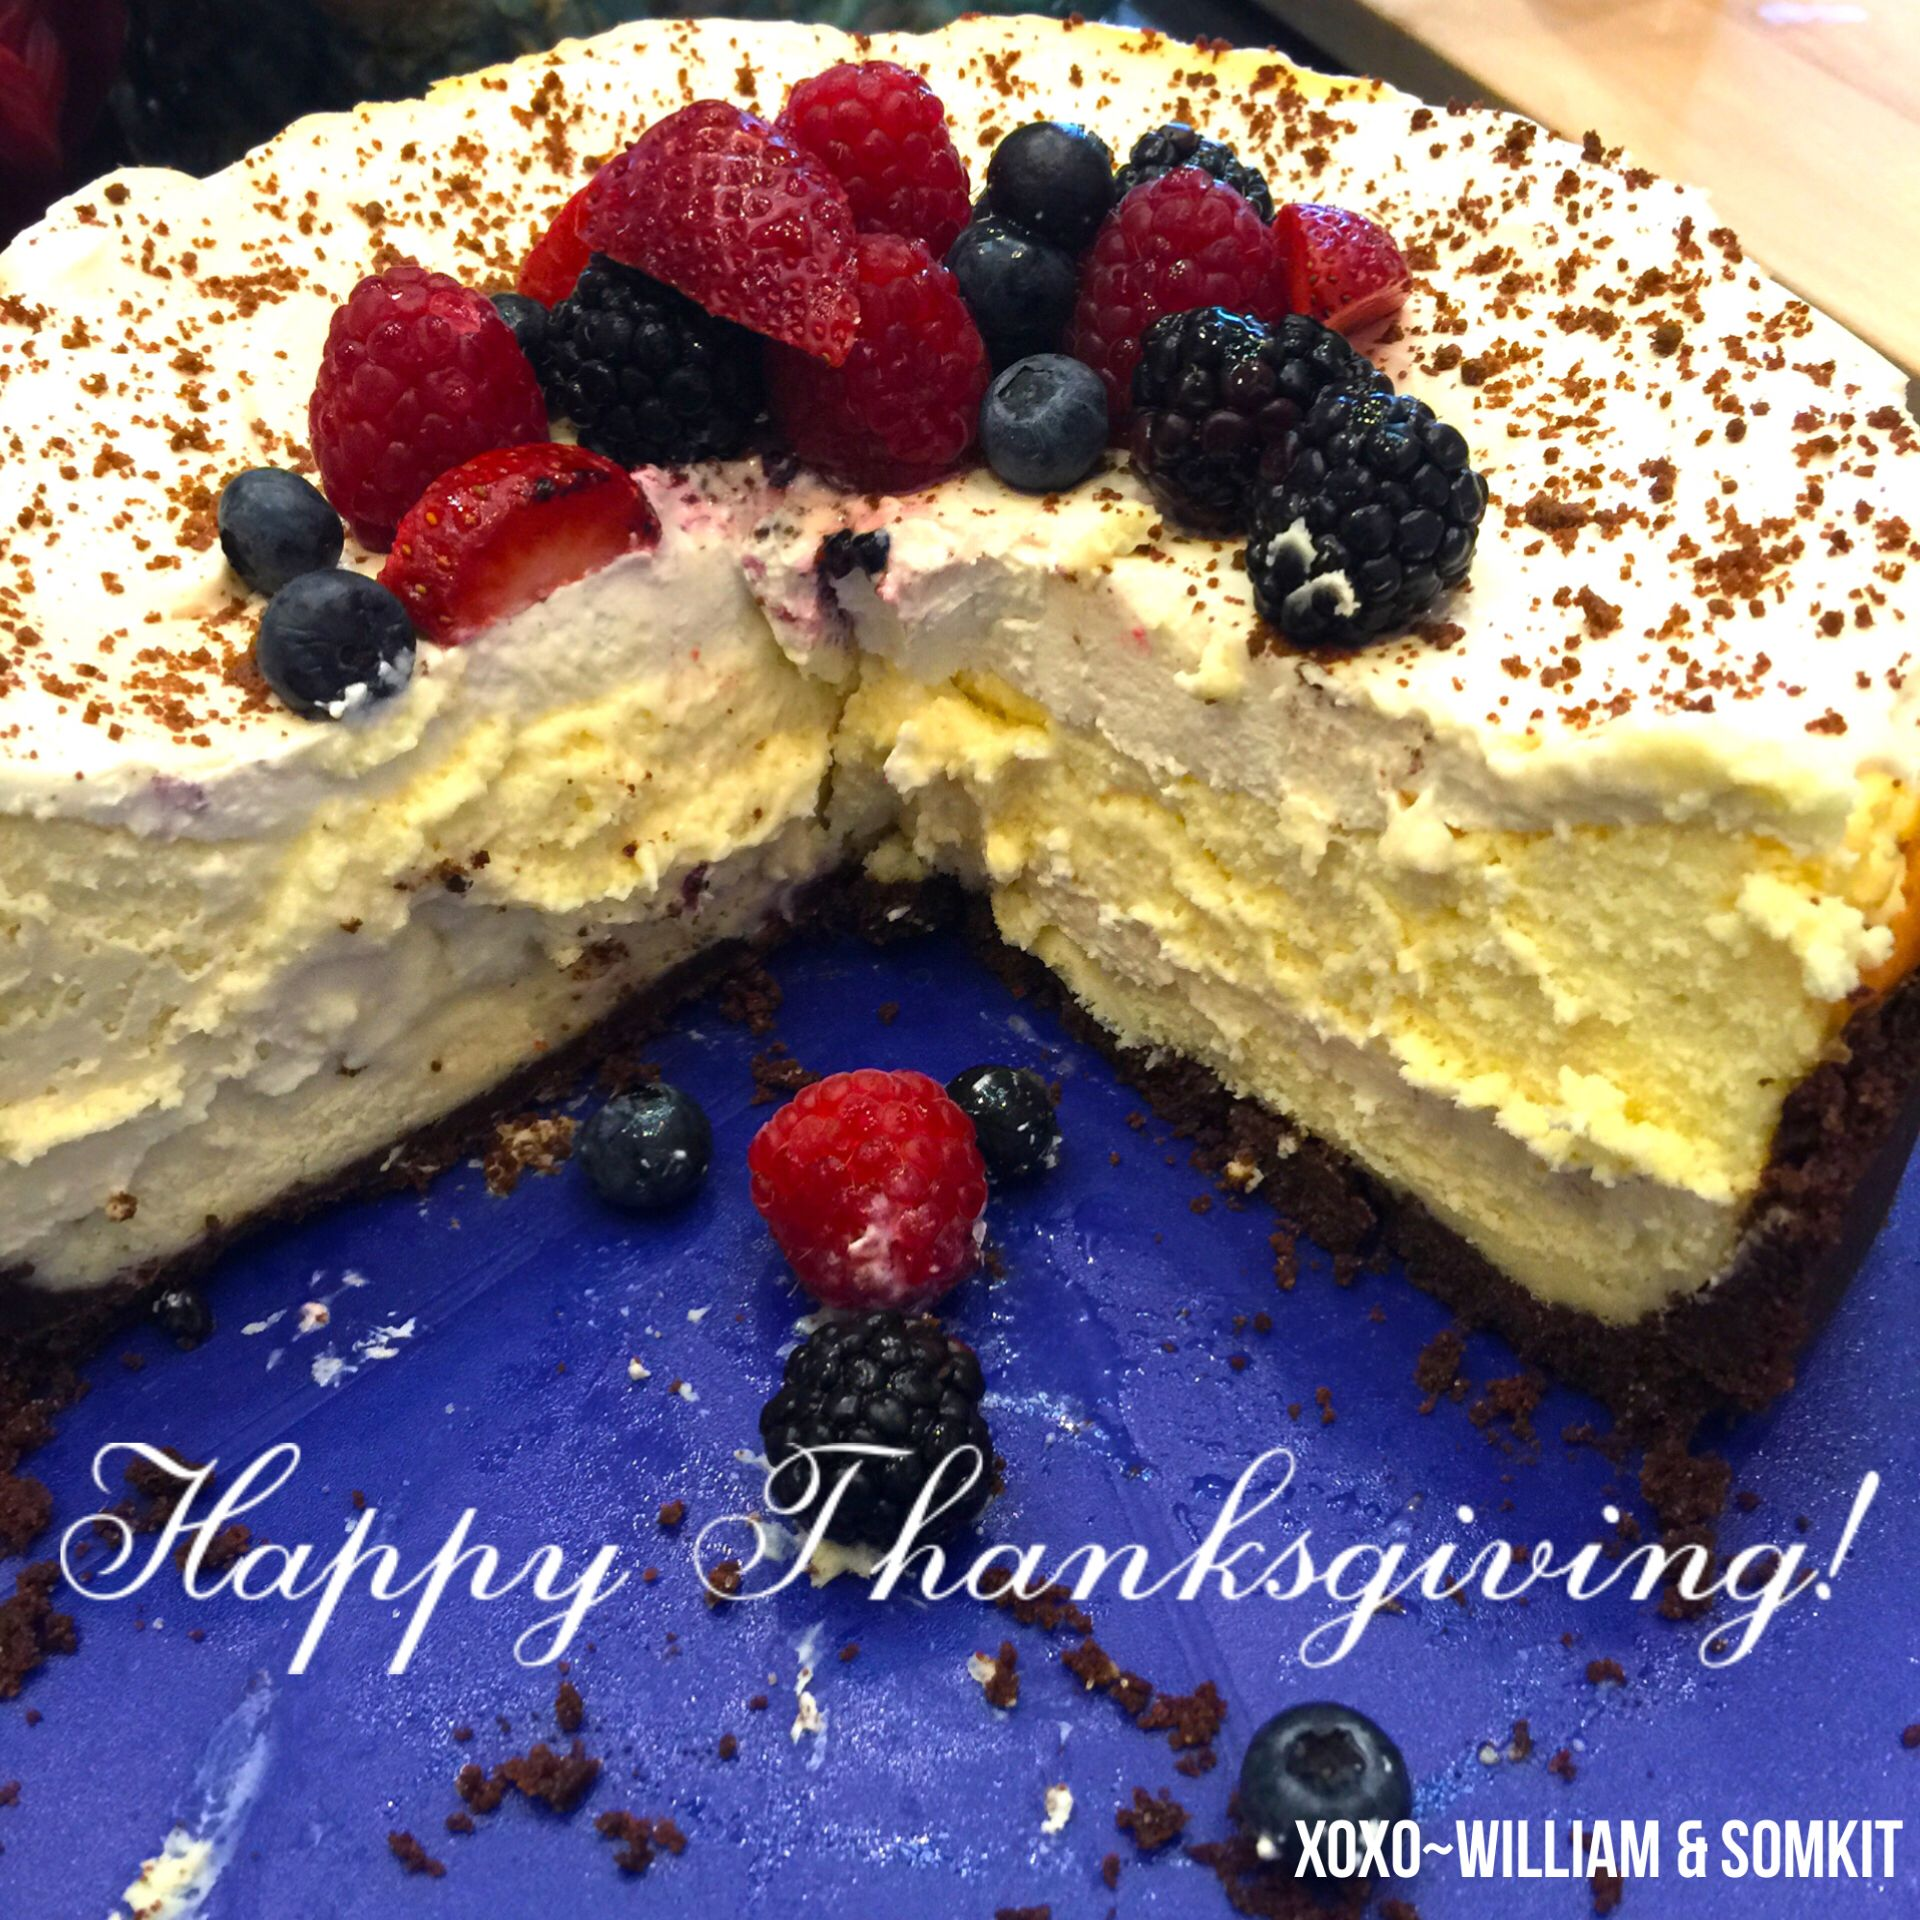 This was a homemade gift to me from Paula Odom! The turkey was not even cut yet- but we decided to try the cheesecake first! - it was worth it!